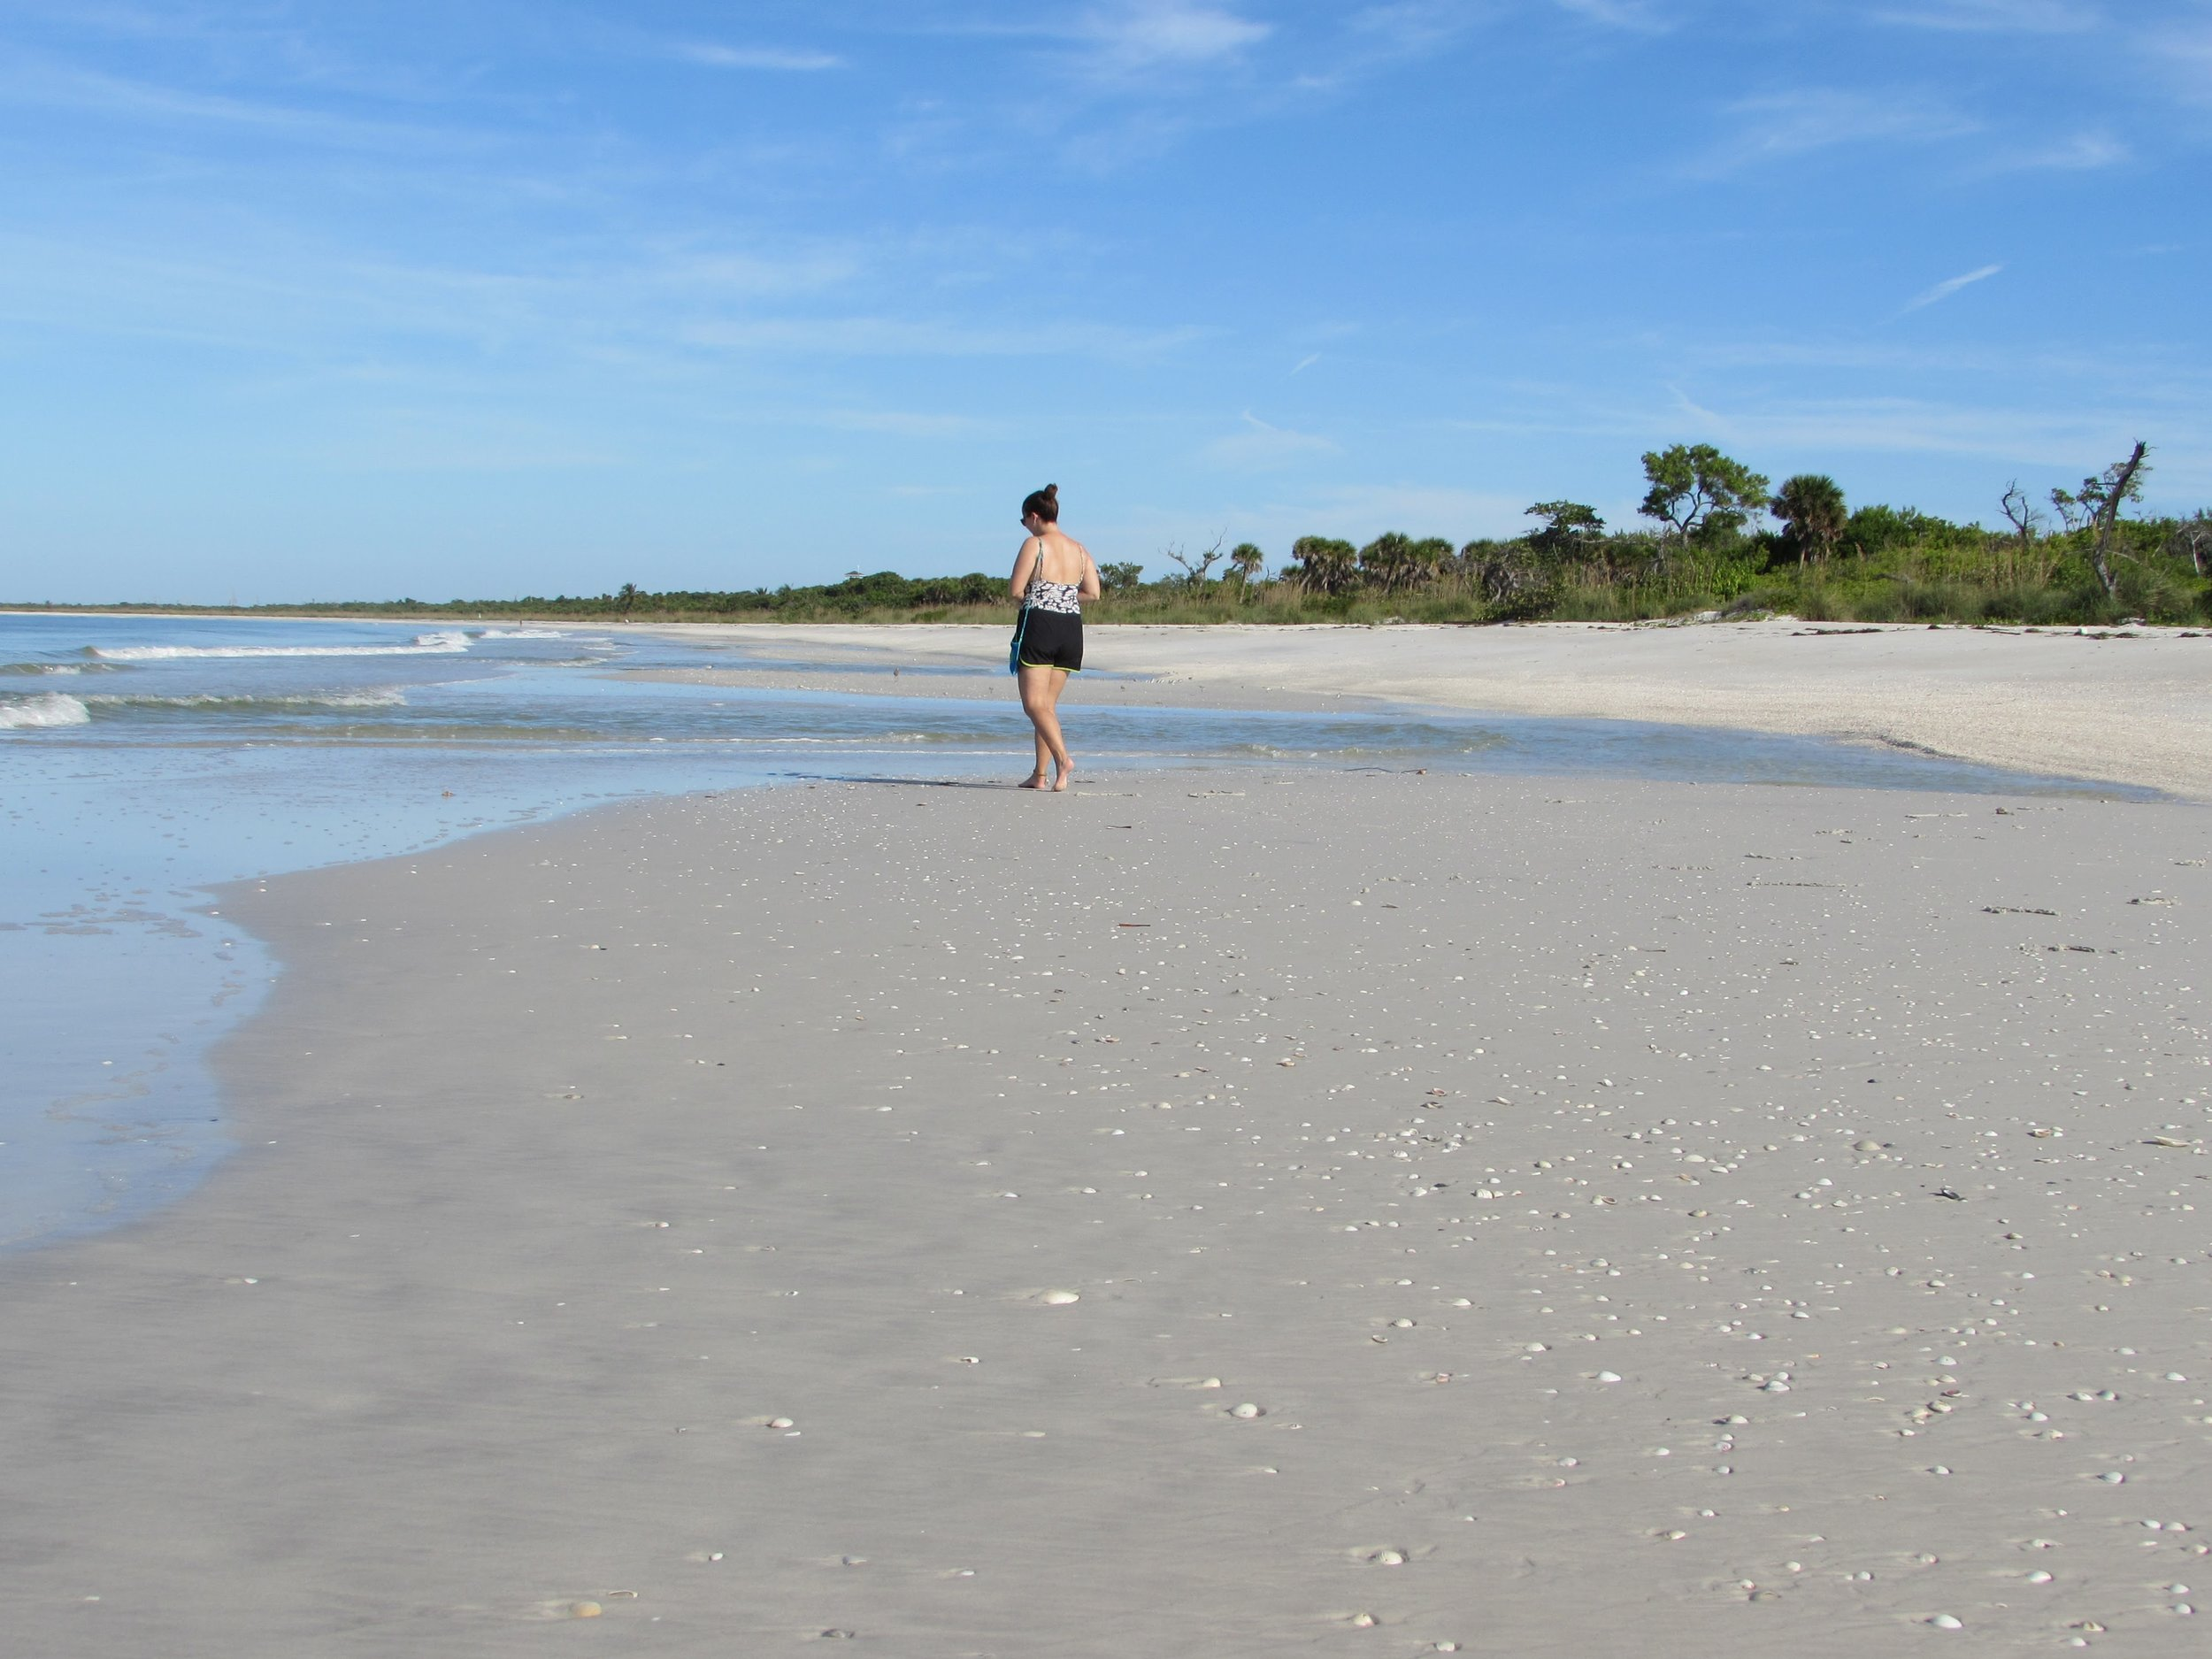 Emmett took this picture - me walking the beach at low tide in Cayo Costa State Park.